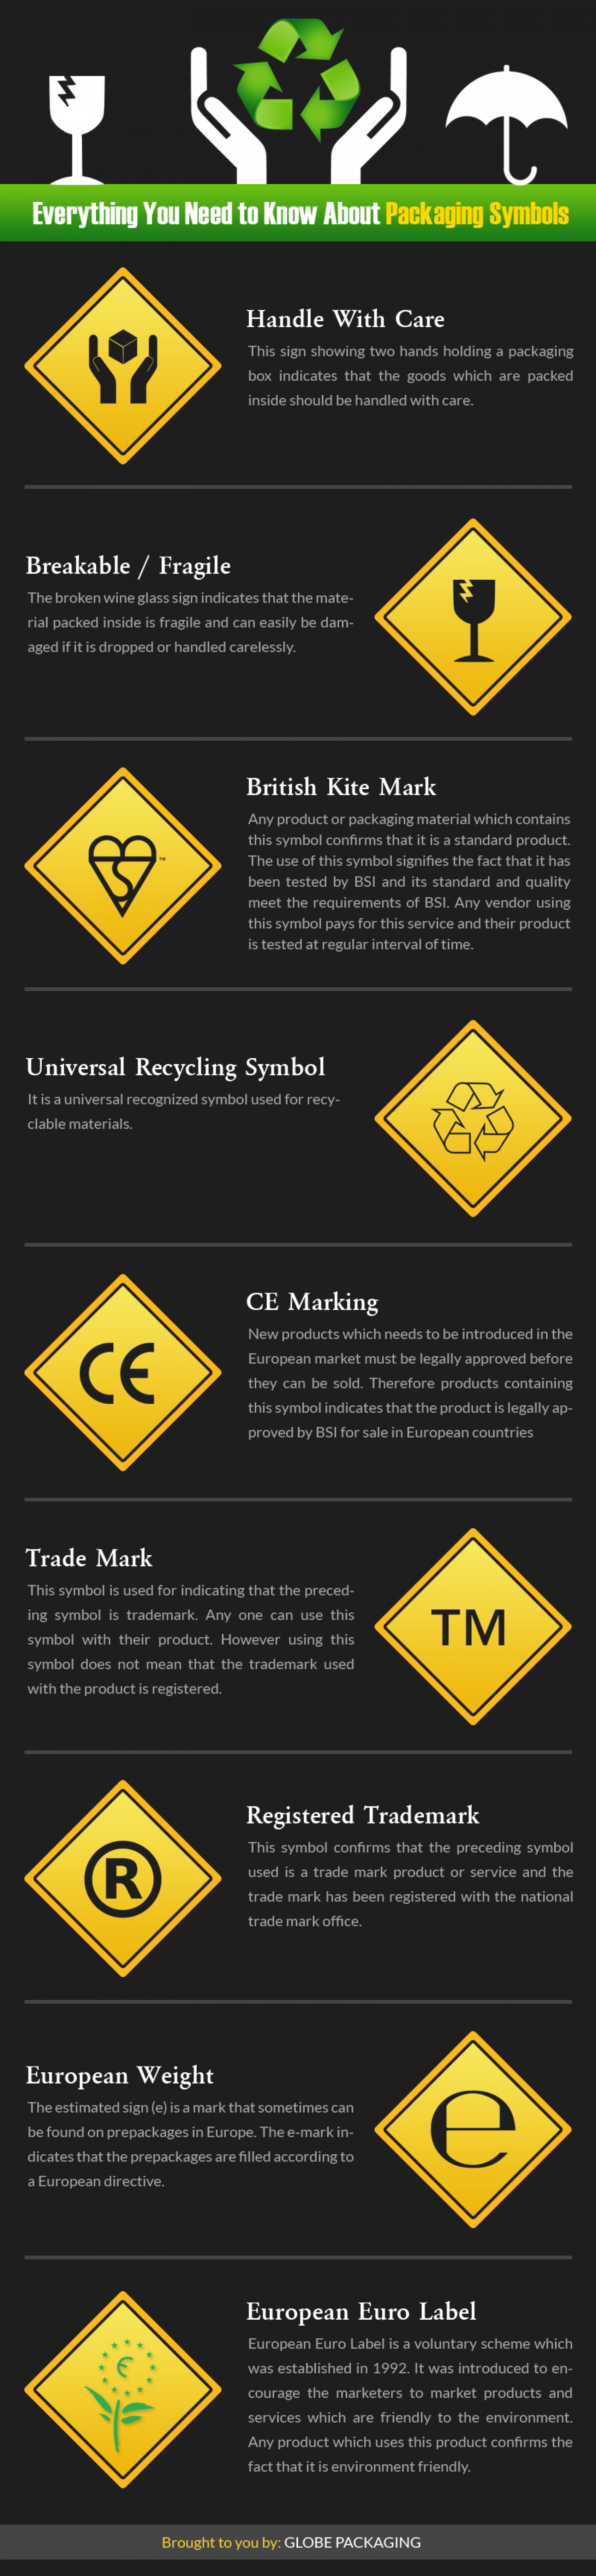 Everything You Need to Know About Packaging Symbols Infographic